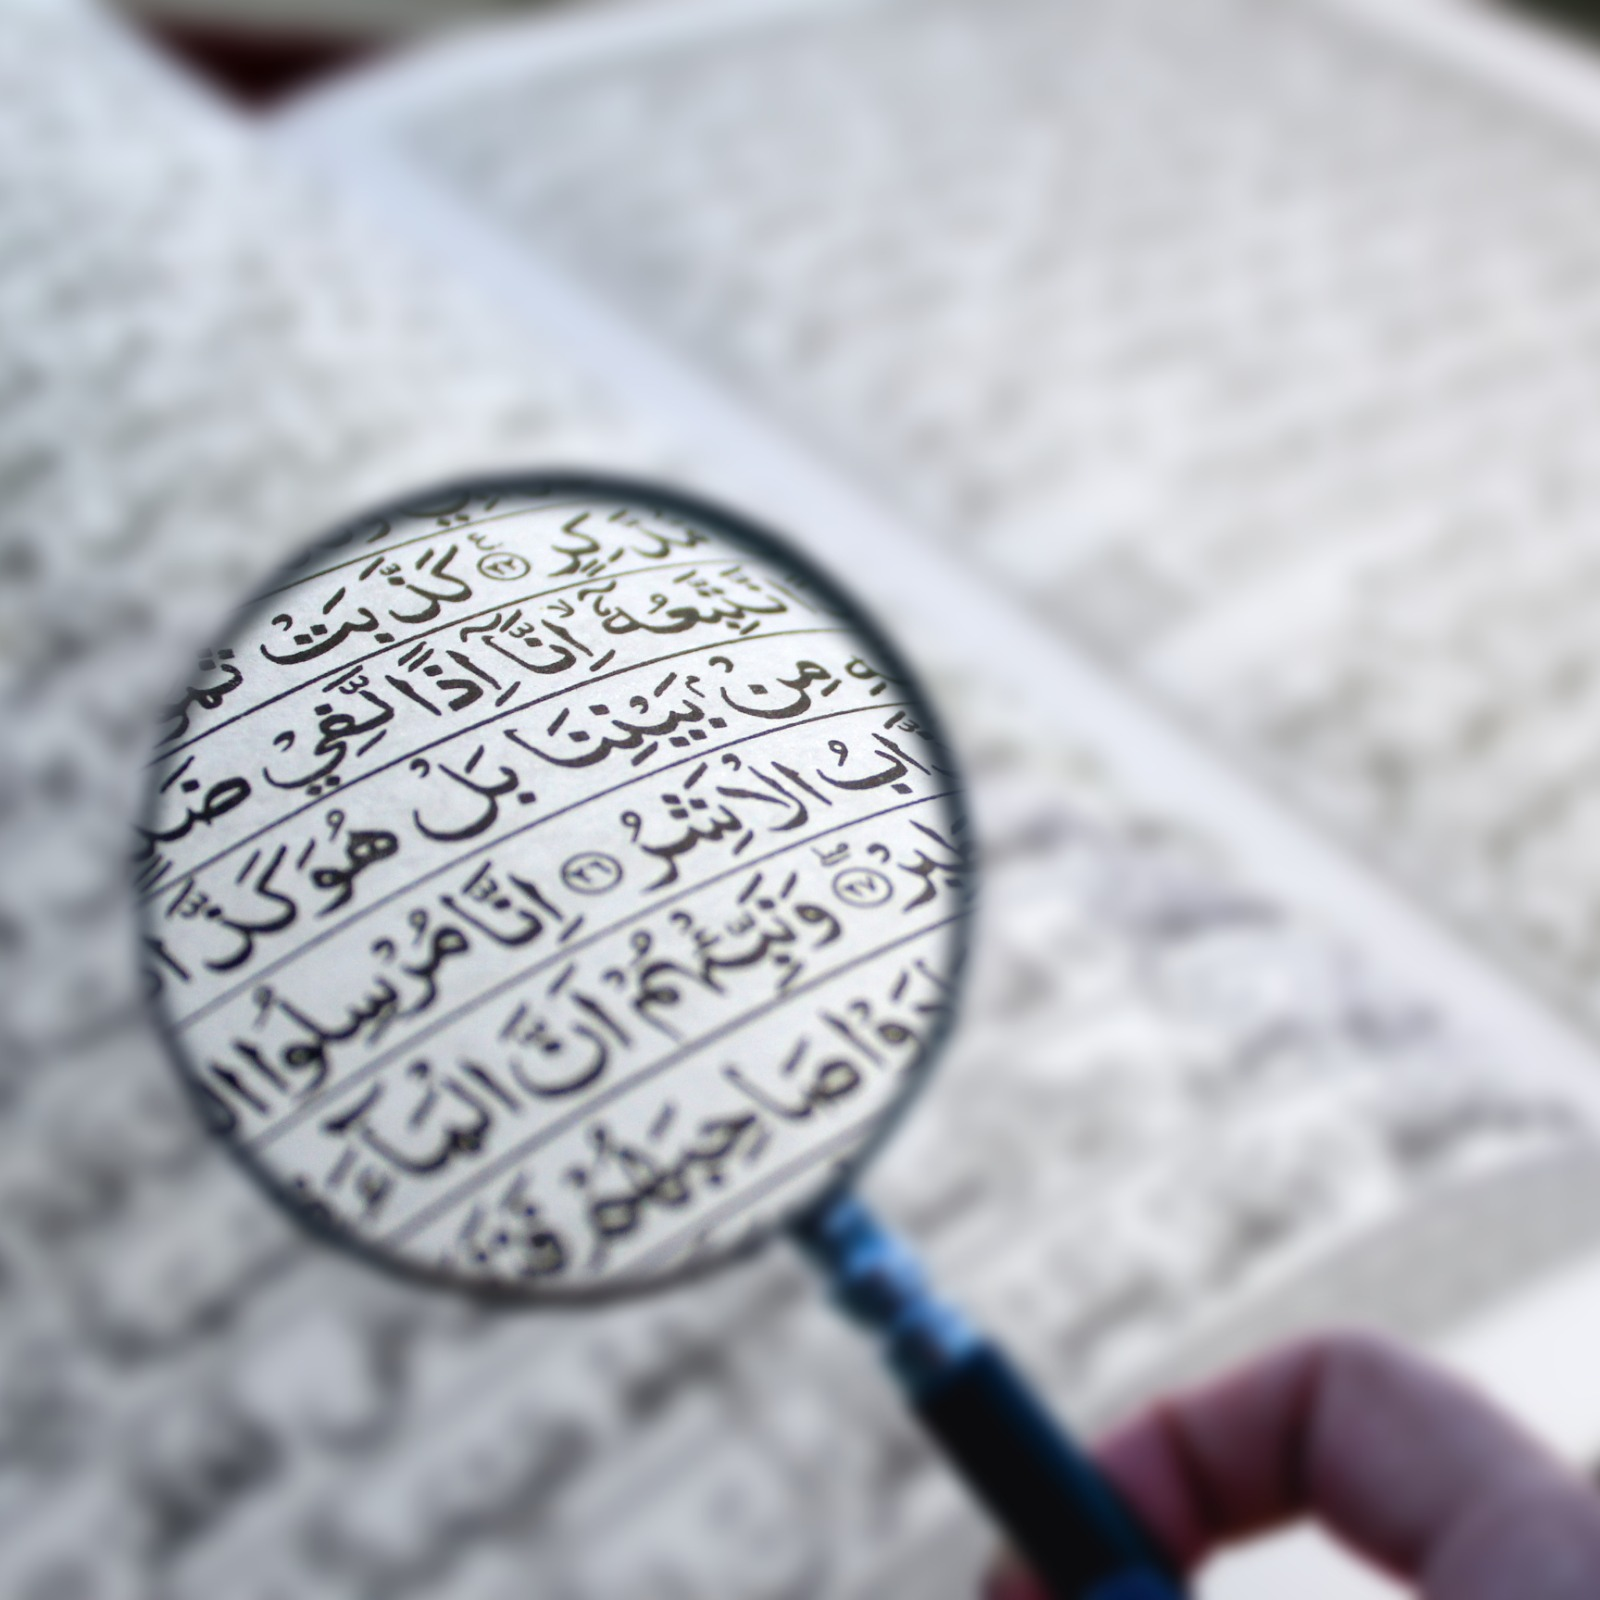 Qualified, Professional Course Instructors - Students will be reading to qualified teachers and have the unique opportunity to undertake the Ijazah process - a certification that one has permission to teach and recite the Holy Qur'an with Tajweed by the chains of reciters that lead to Prophet Muhammad (PBUH) and to Allah (SWT)